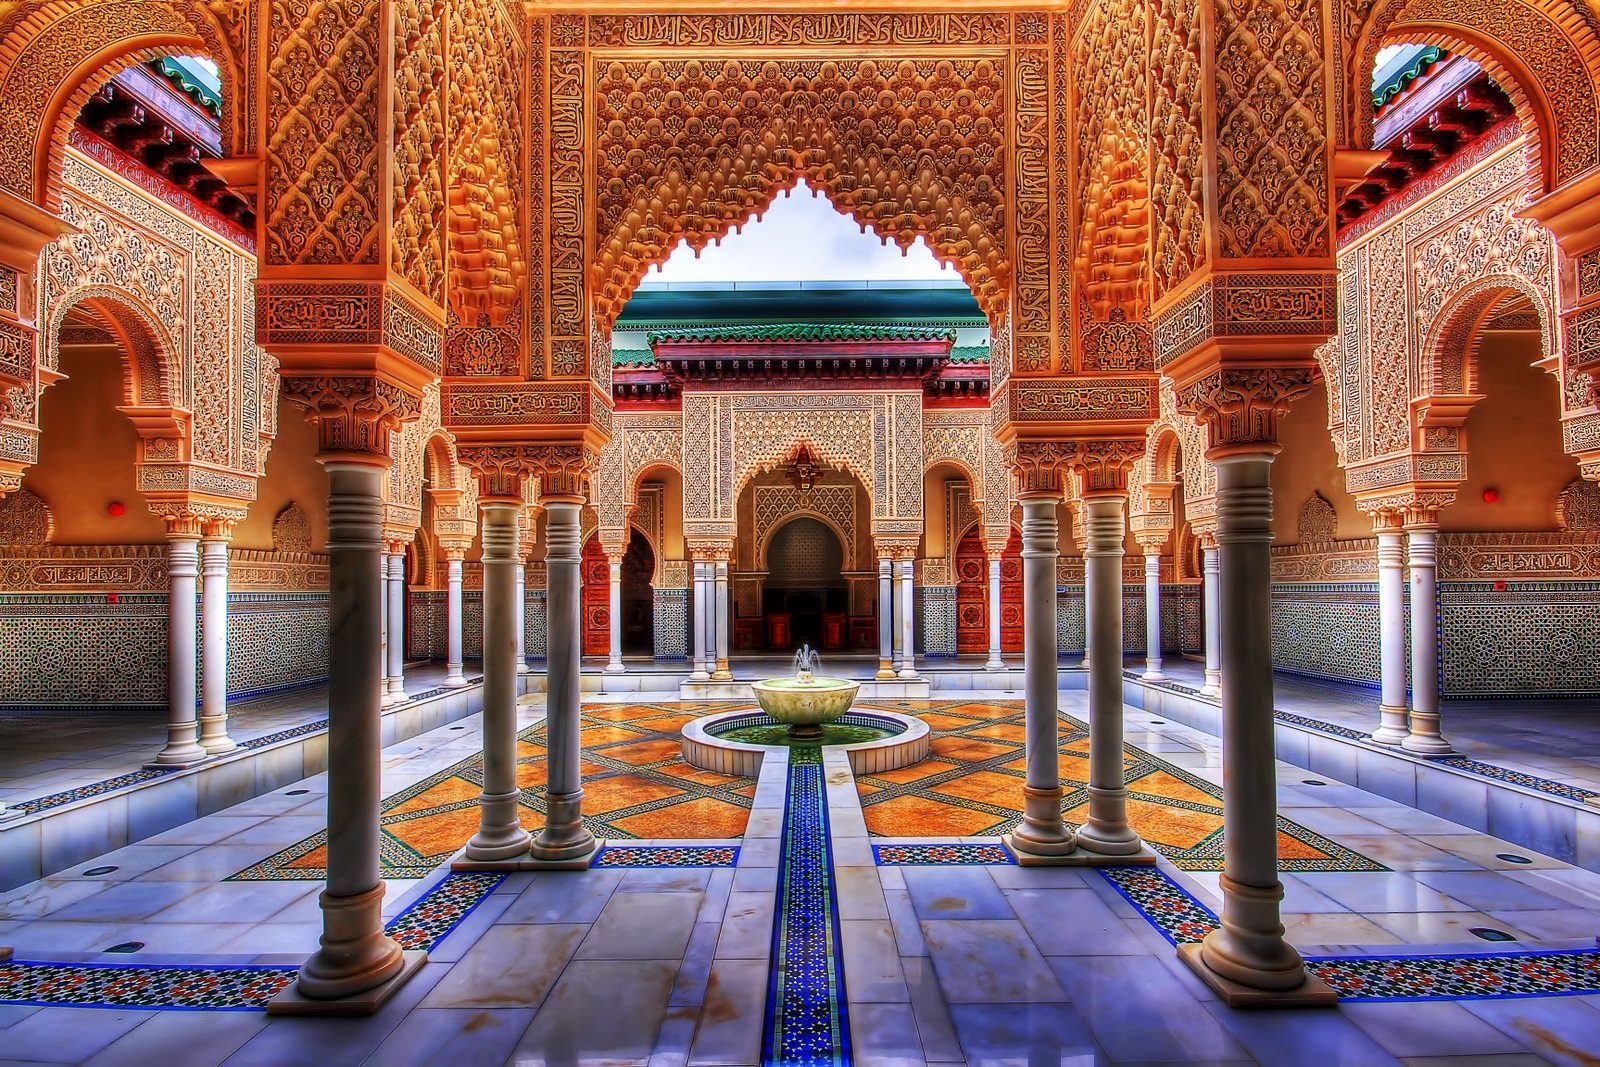 Morocco, 2019 - April 6-11, 2019.FULLY BOOKEDEnchanting, beautiful, and bursting with mystery and wonder, join me under the African sun for the adventure of a lifetime!